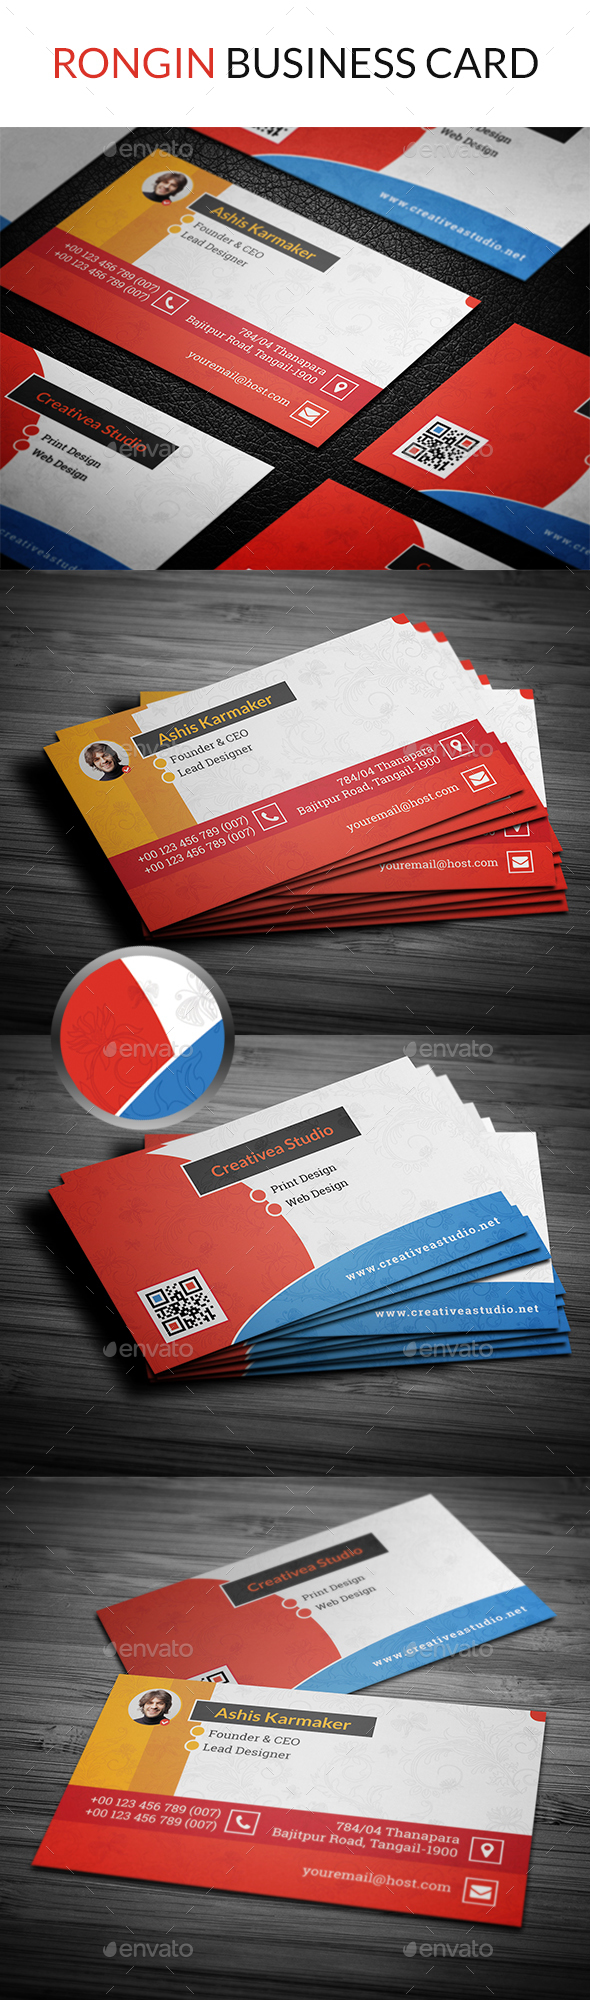 Rongin Business Card - Creative Business Cards